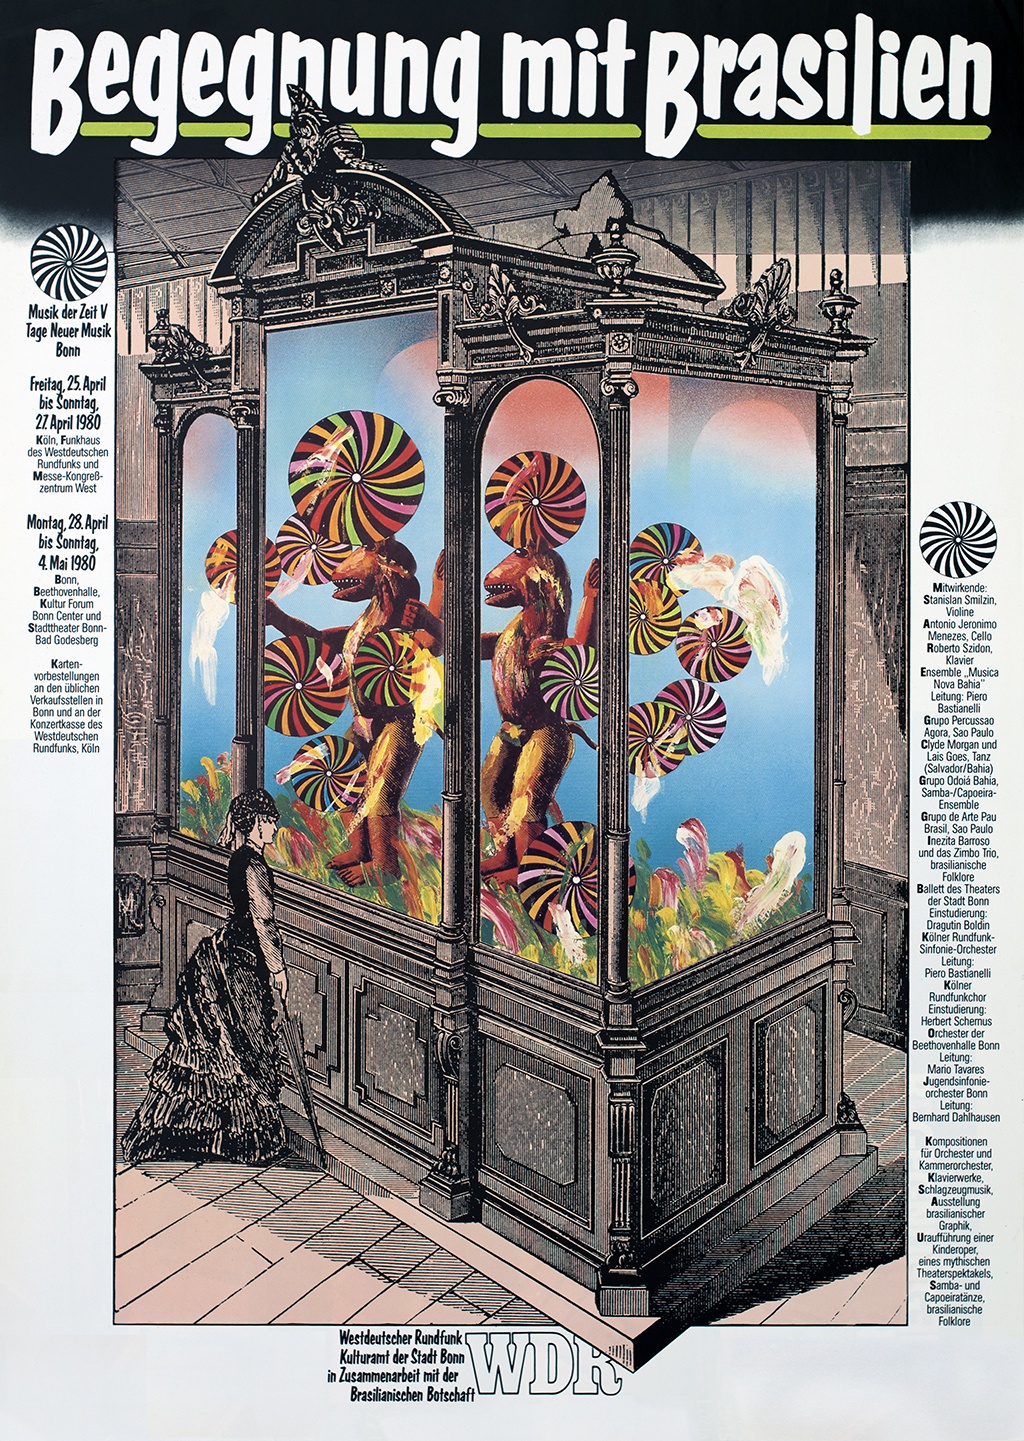 Collage of a black-and-white nineteenth-century woman looking into a large glass cabinet with colorful pinwheels and anthropomorphic animal statutes.